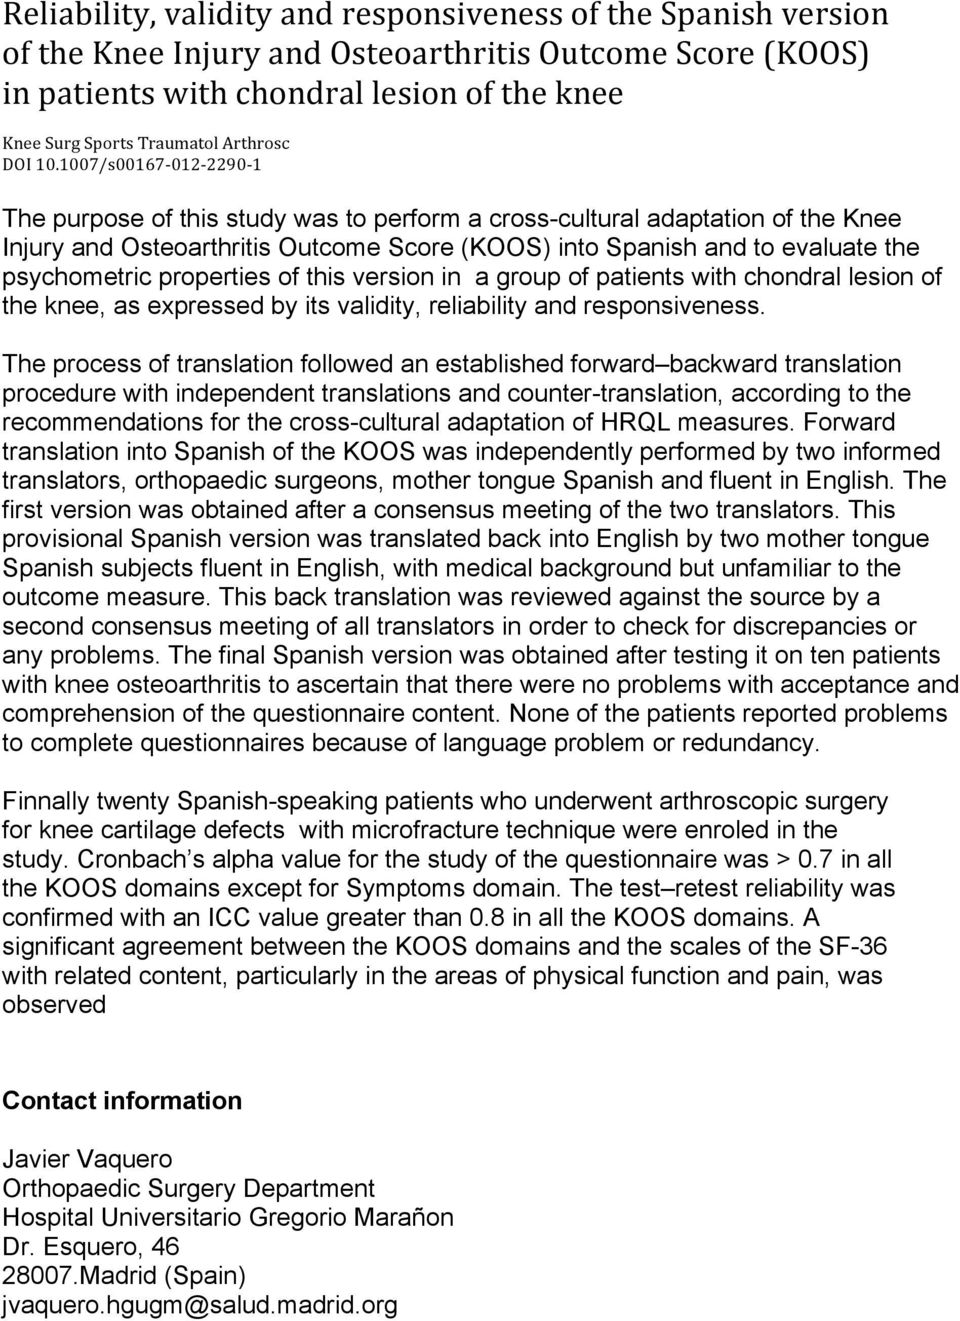 1007/s00167-012- 2290-1 The purpose of this study was to perform a cross-cultural adaptation of the Knee Injury and Osteoarthritis Outcome Score (KOOS) into Spanish and to evaluate the psychometric